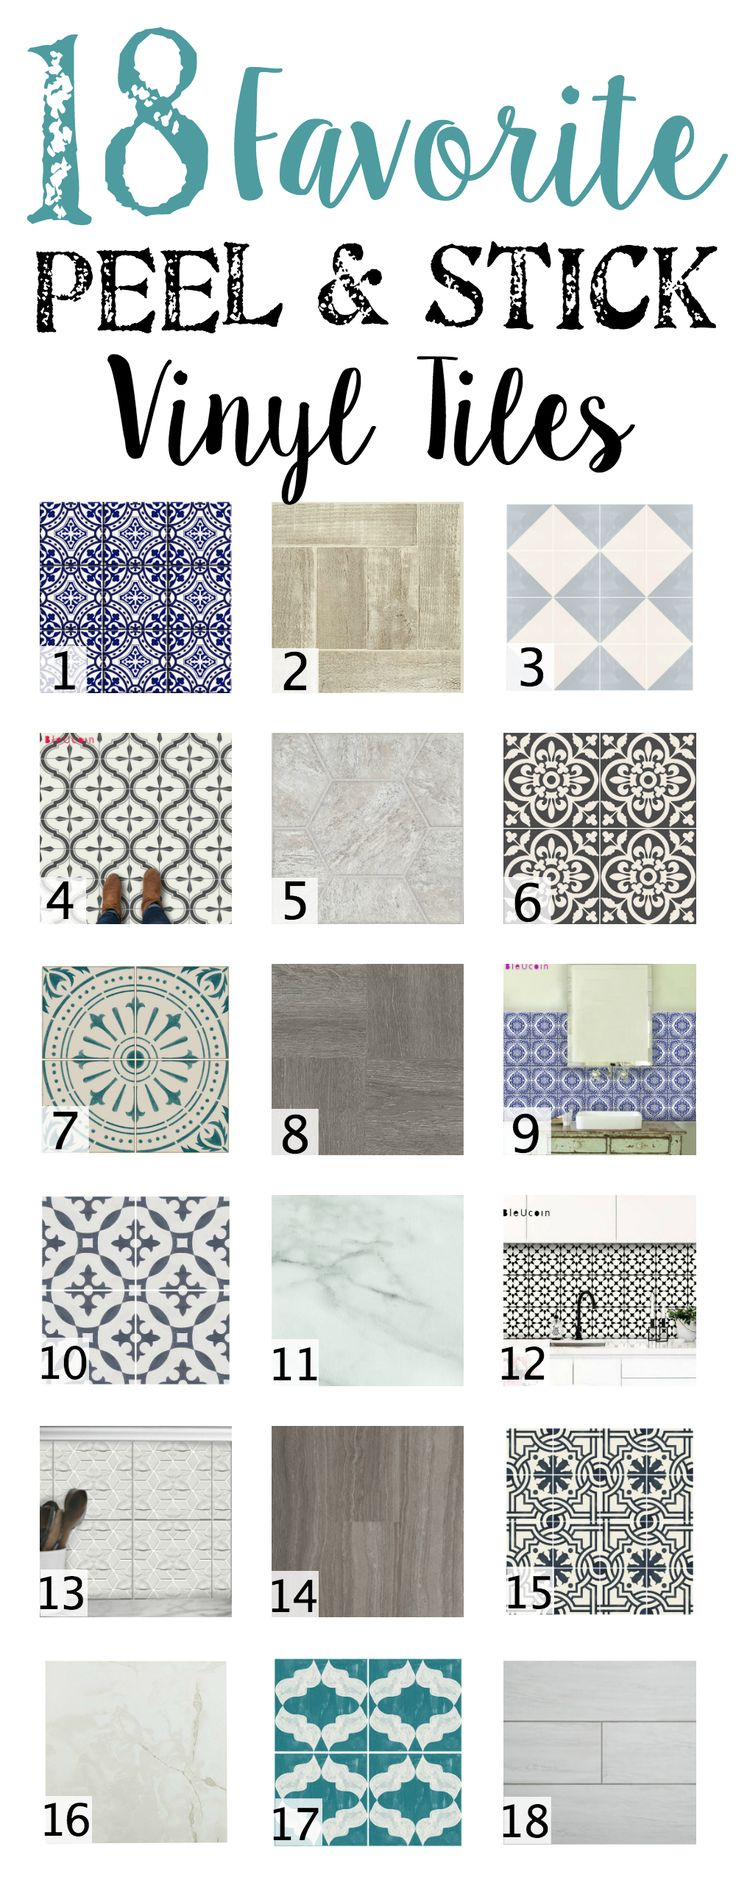 18 Favorite Peel and Stick Vinyl Tiles   blesserhouse.com - A shopping guide round-up of 18 of the best peel and stick vinyl tiles in wood-looks, stone-looks, and trendy patterns. Quick, easy, and no-mess.